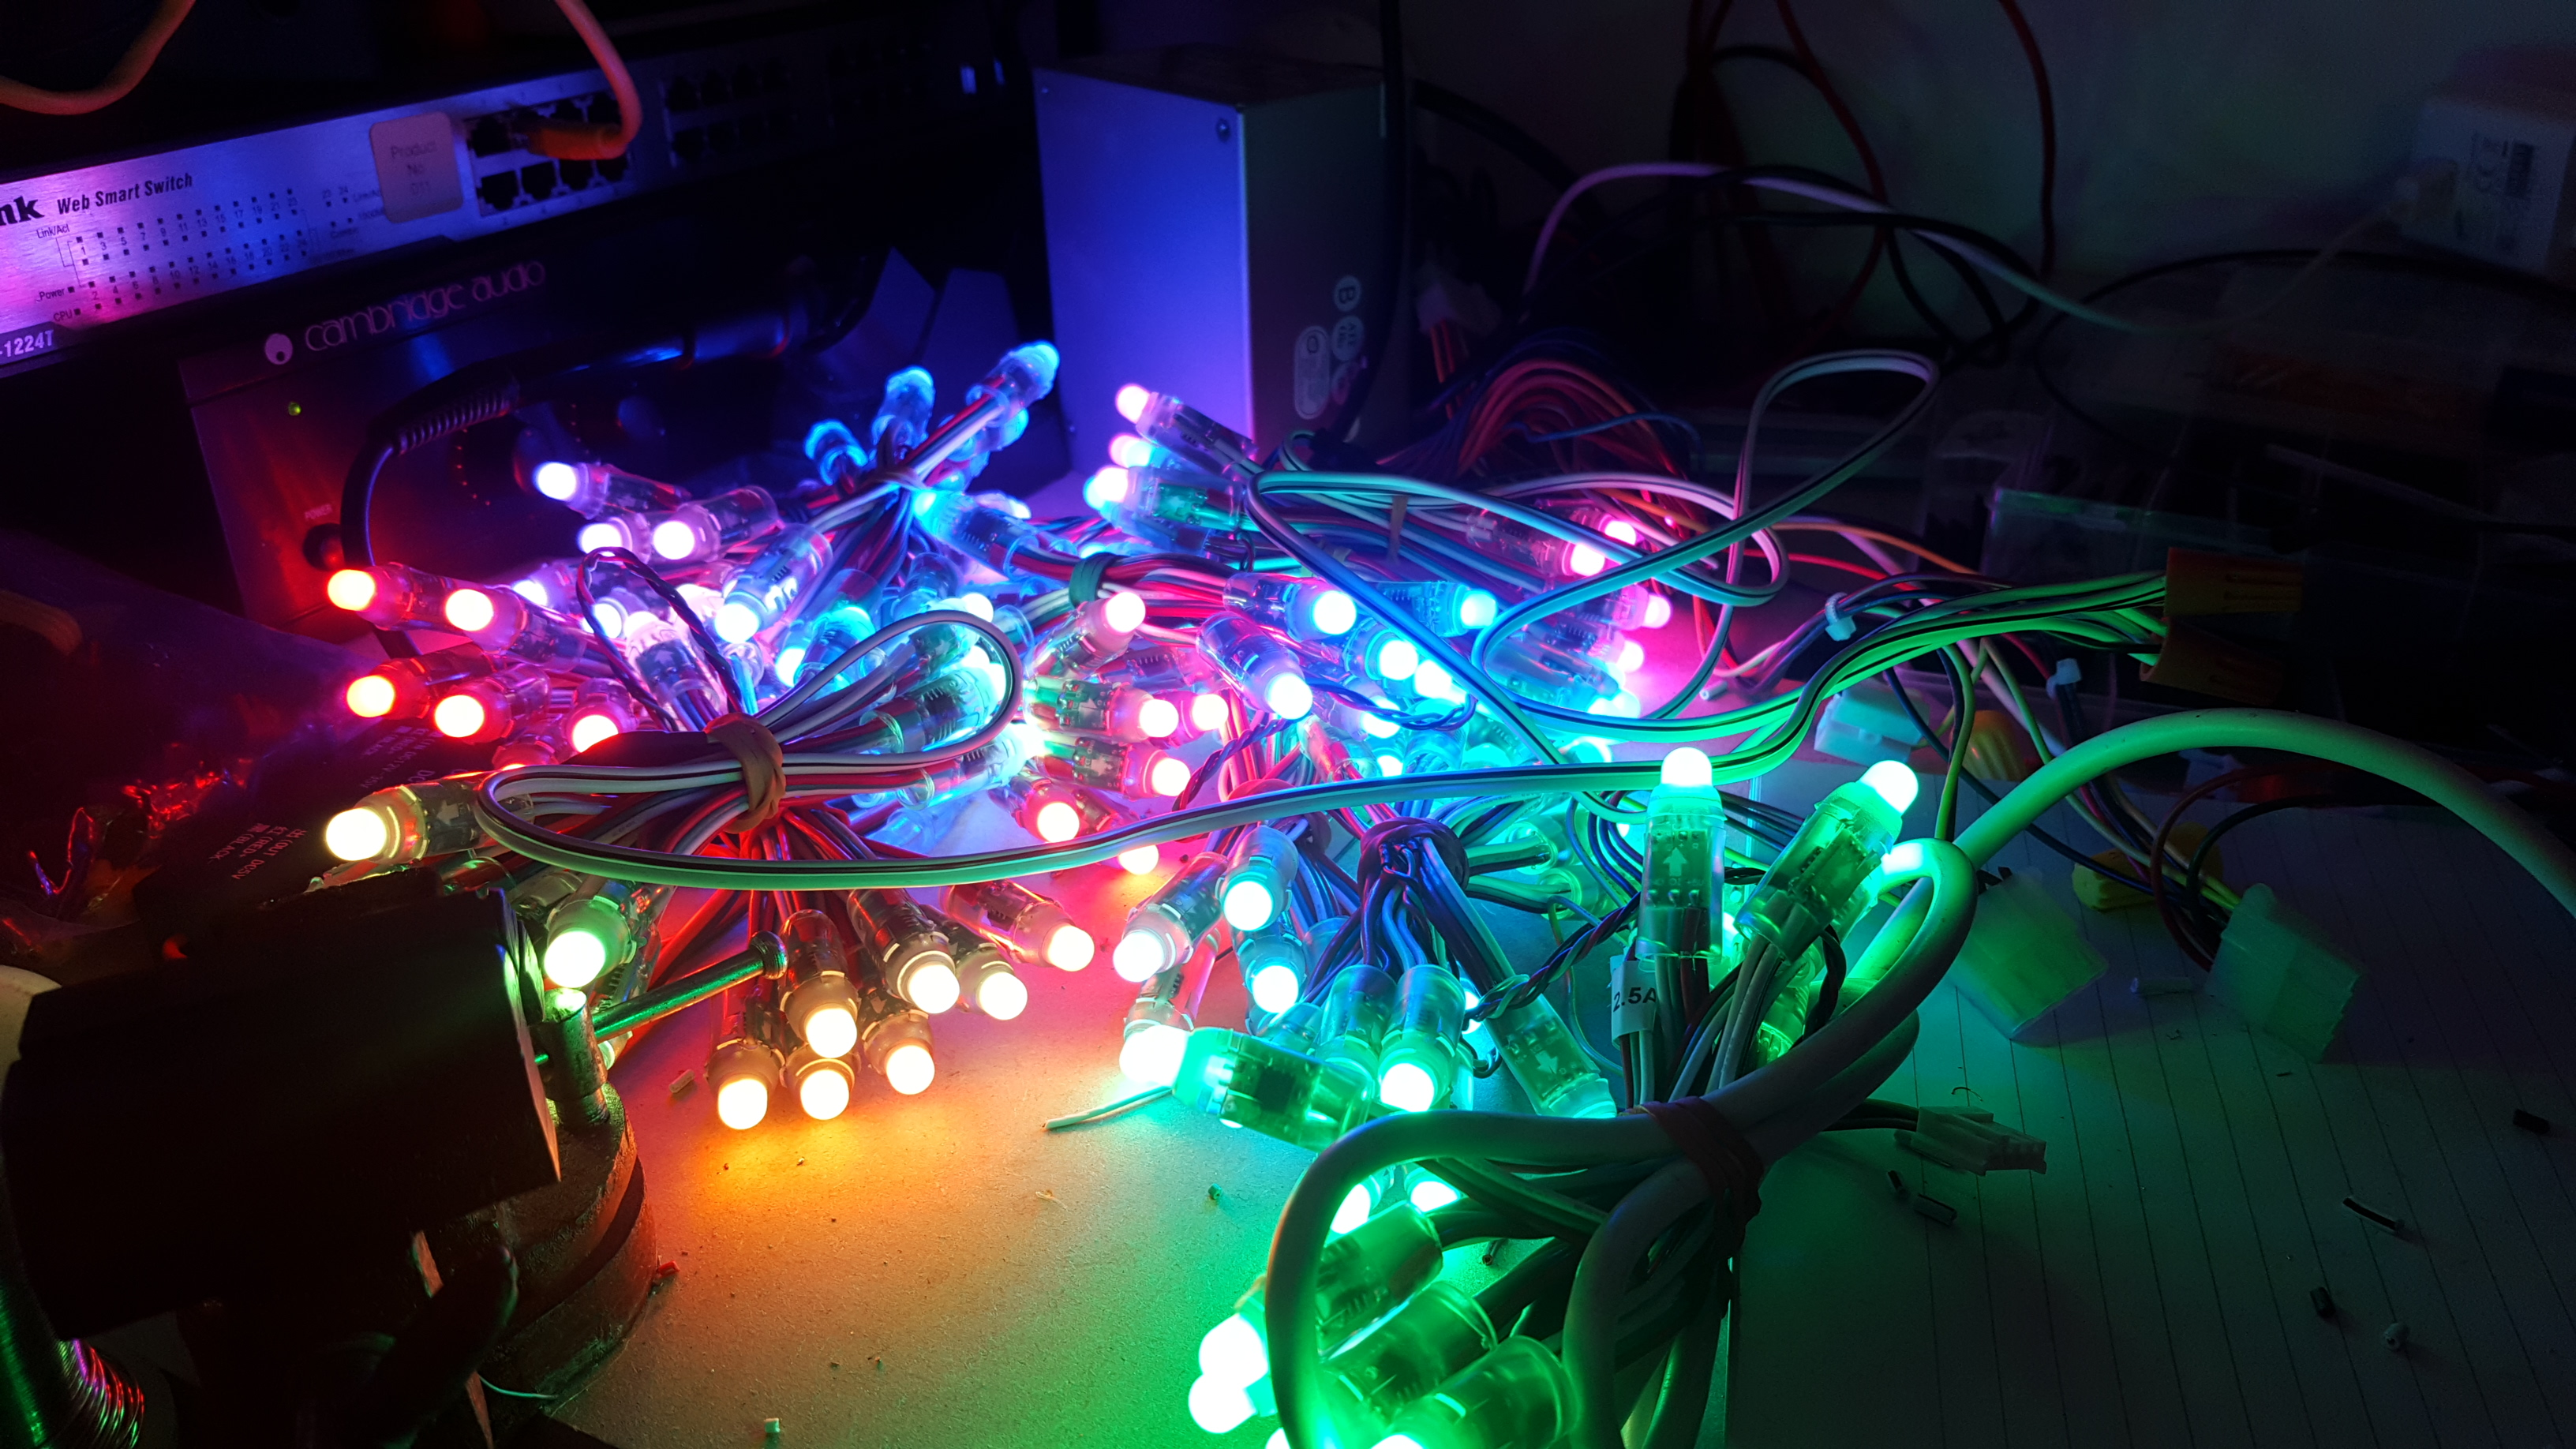 Ws2811 Tom Hopkins Christmas Light Wiring Diagram 3 Wire Besides String Lights In To Inject The Power All Connections Were Covered Adhesive Lined Heat Shrink Tubing Try And Keep Waterproof